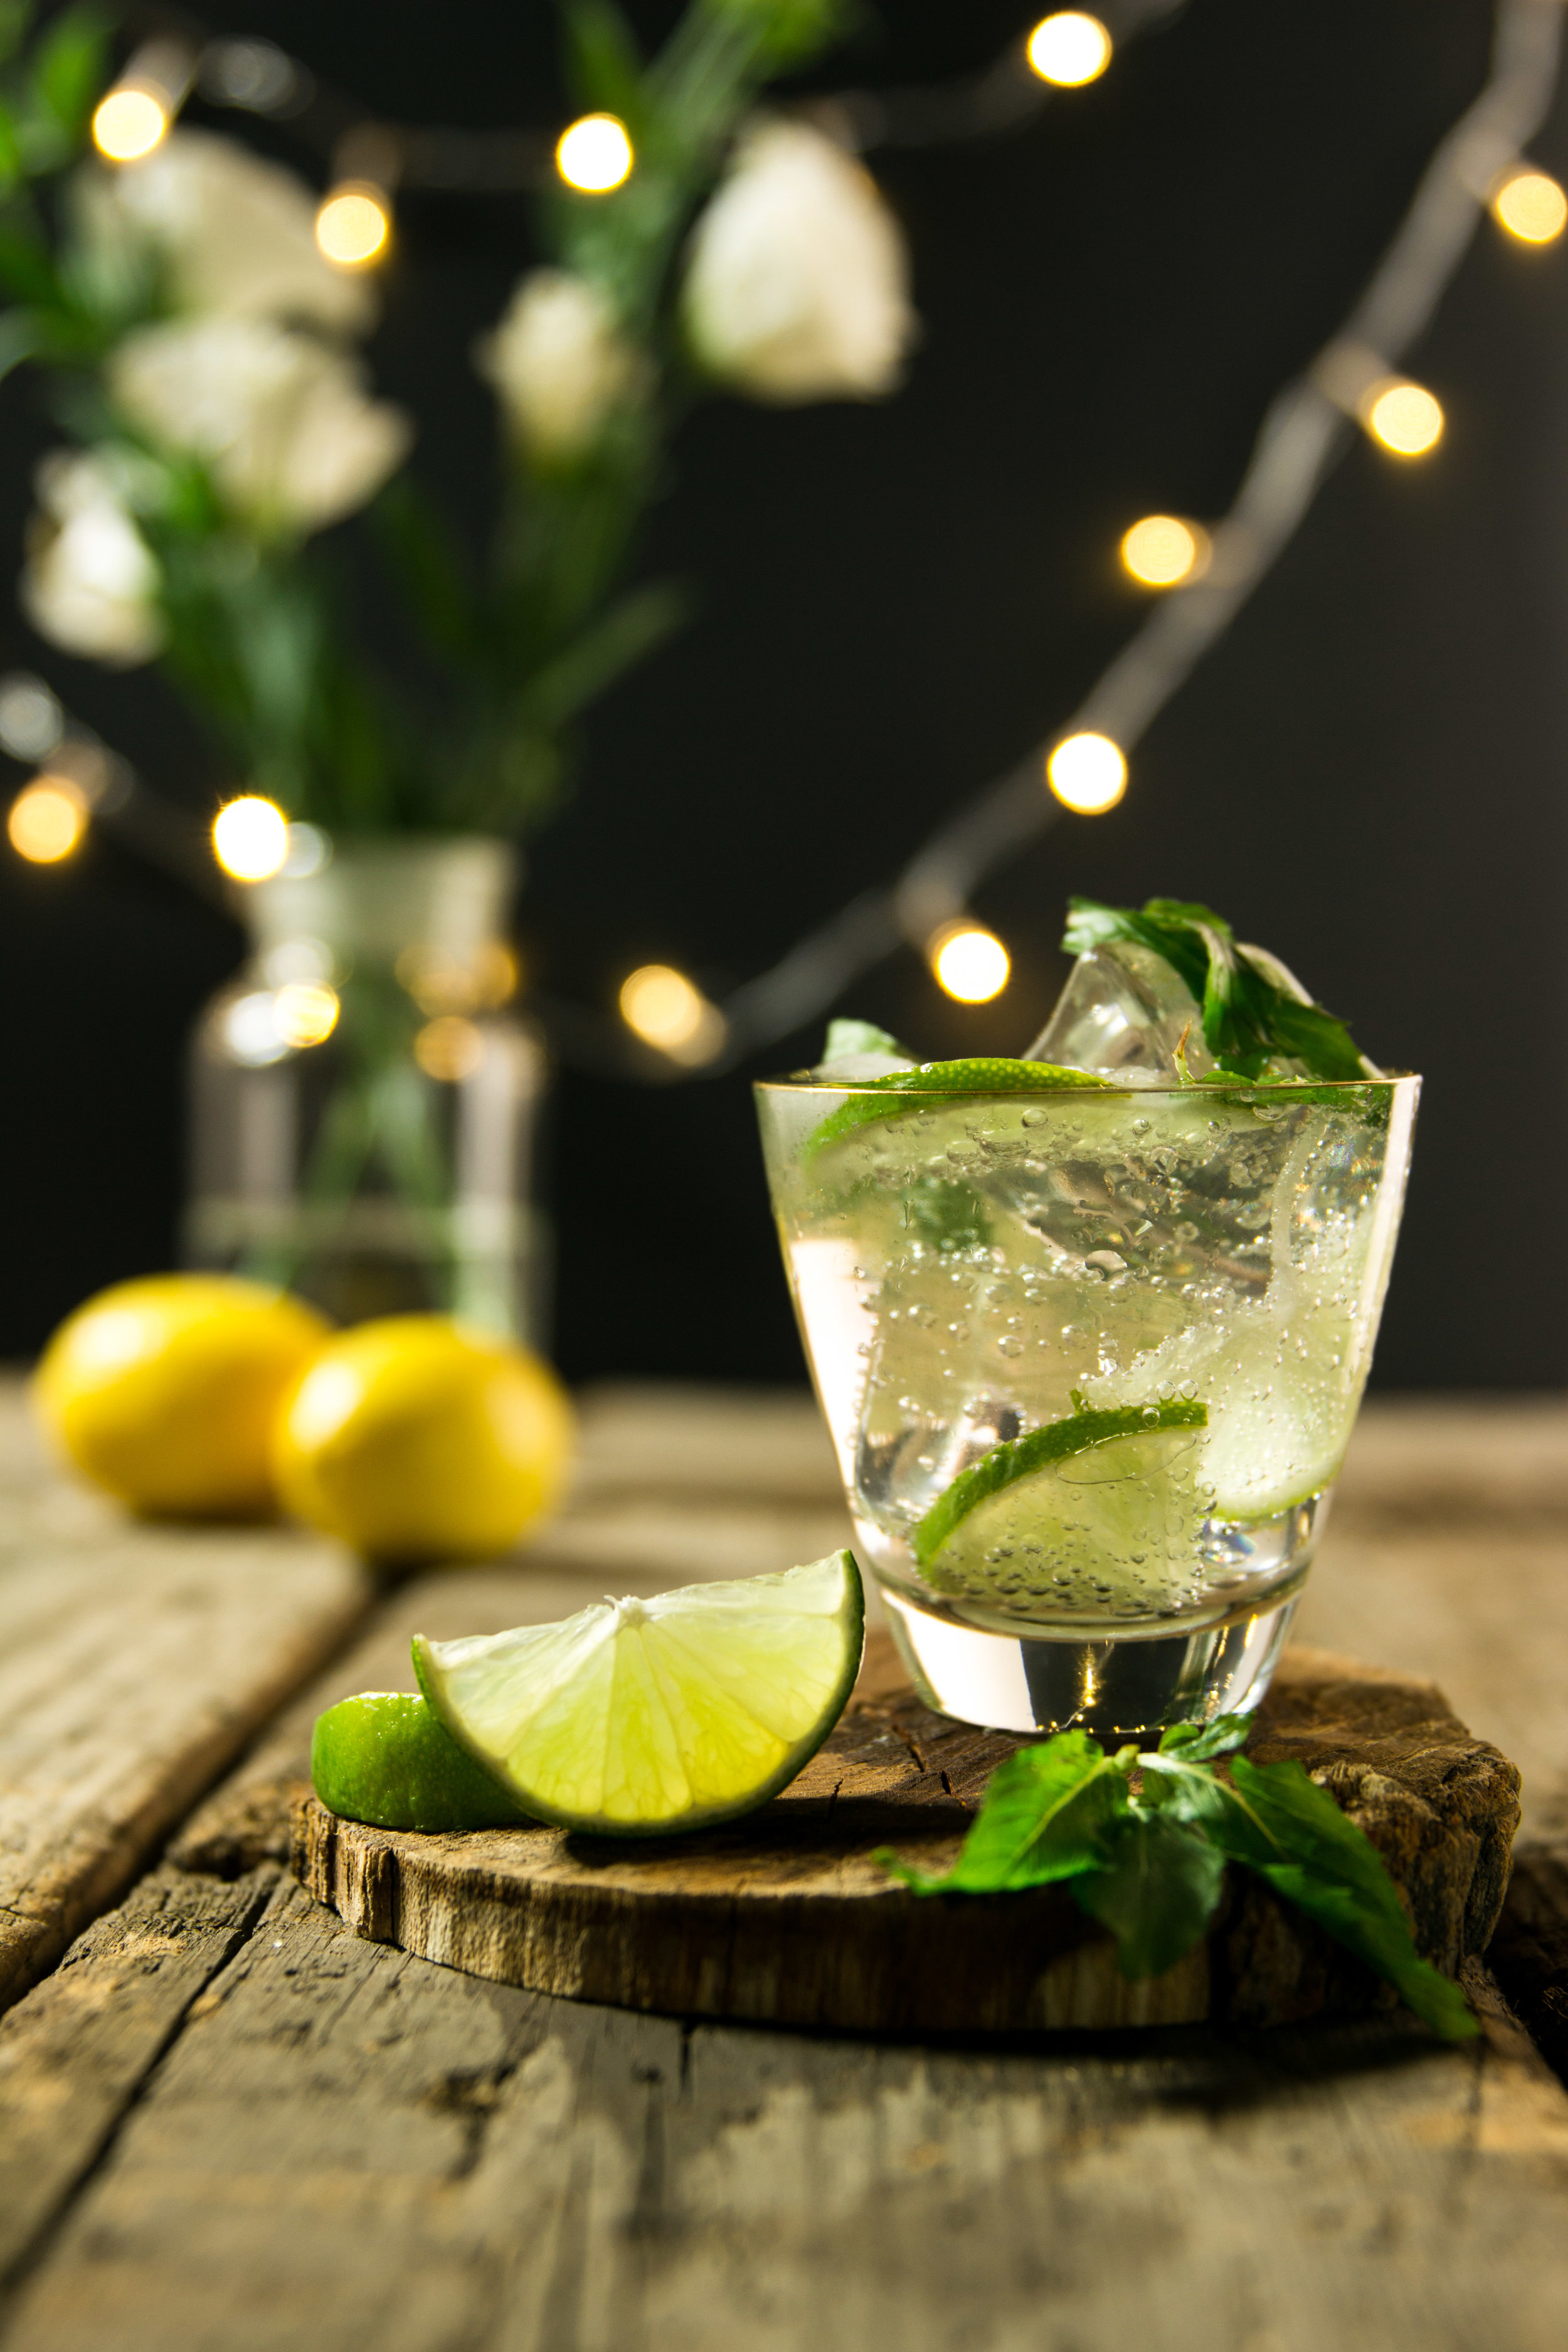 Ness Physiotherapy - alcohol beverage and calories